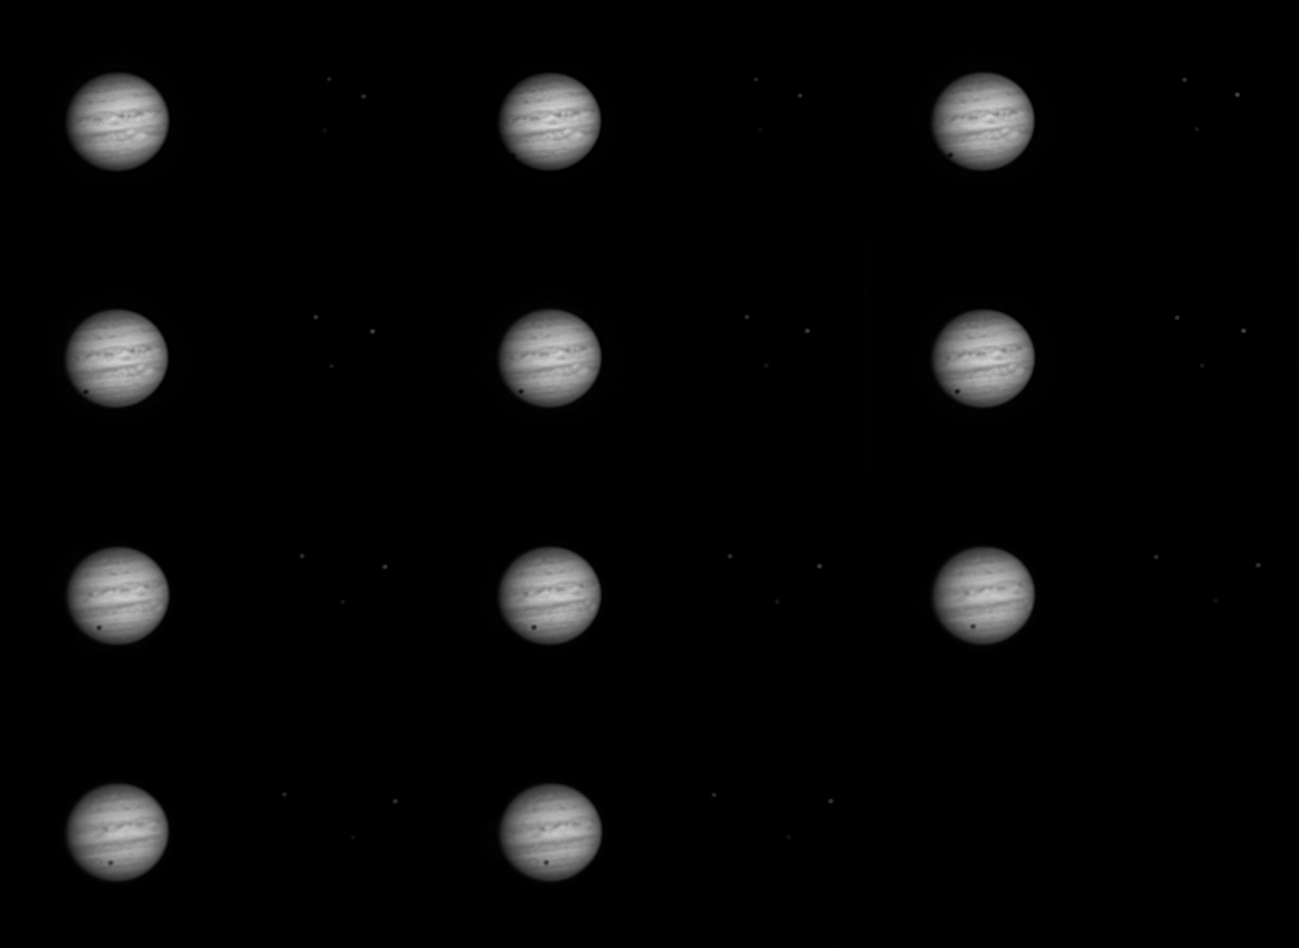 jupiter-callisto_arnyek-2014-03-11-ttk-all